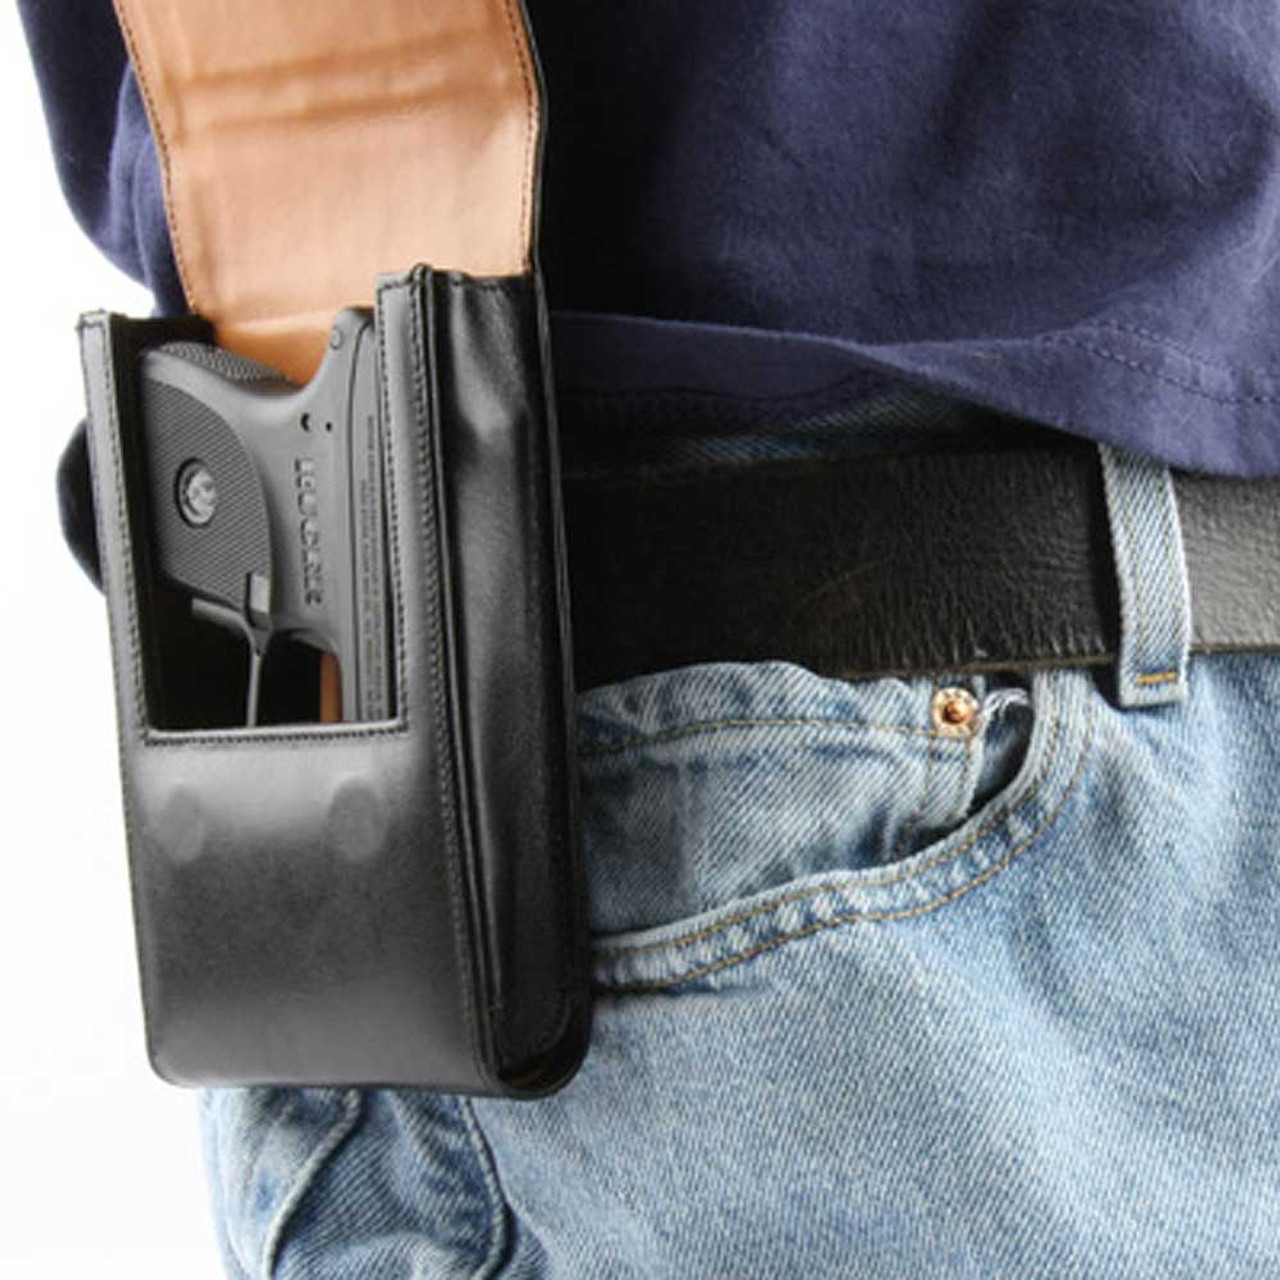 Kimber Ultra TLE II Concealed Carry Holster (Belt Loop)